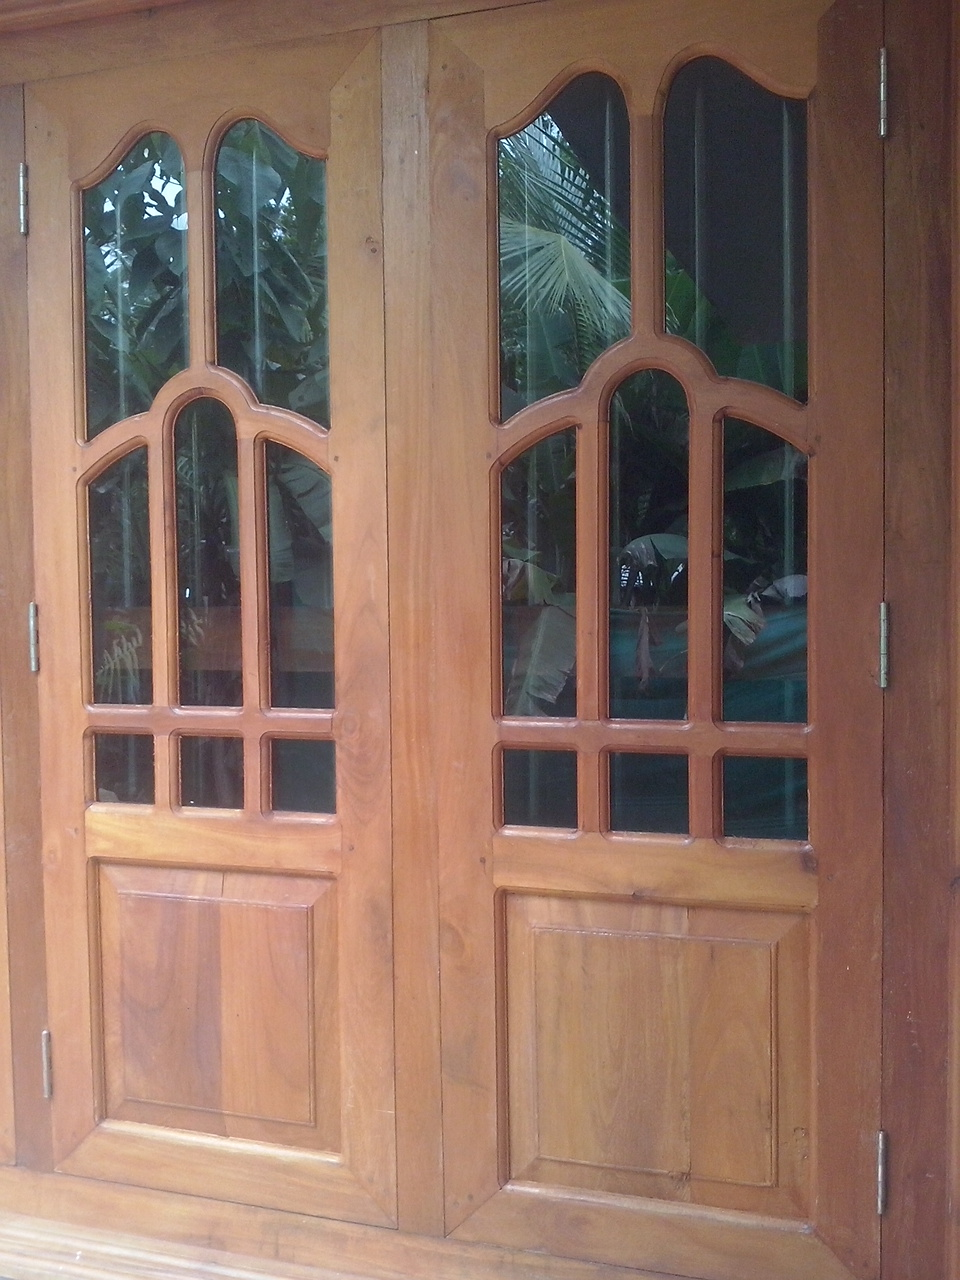 Bavas wood works kerala style wooden window door designs for Wooden windows